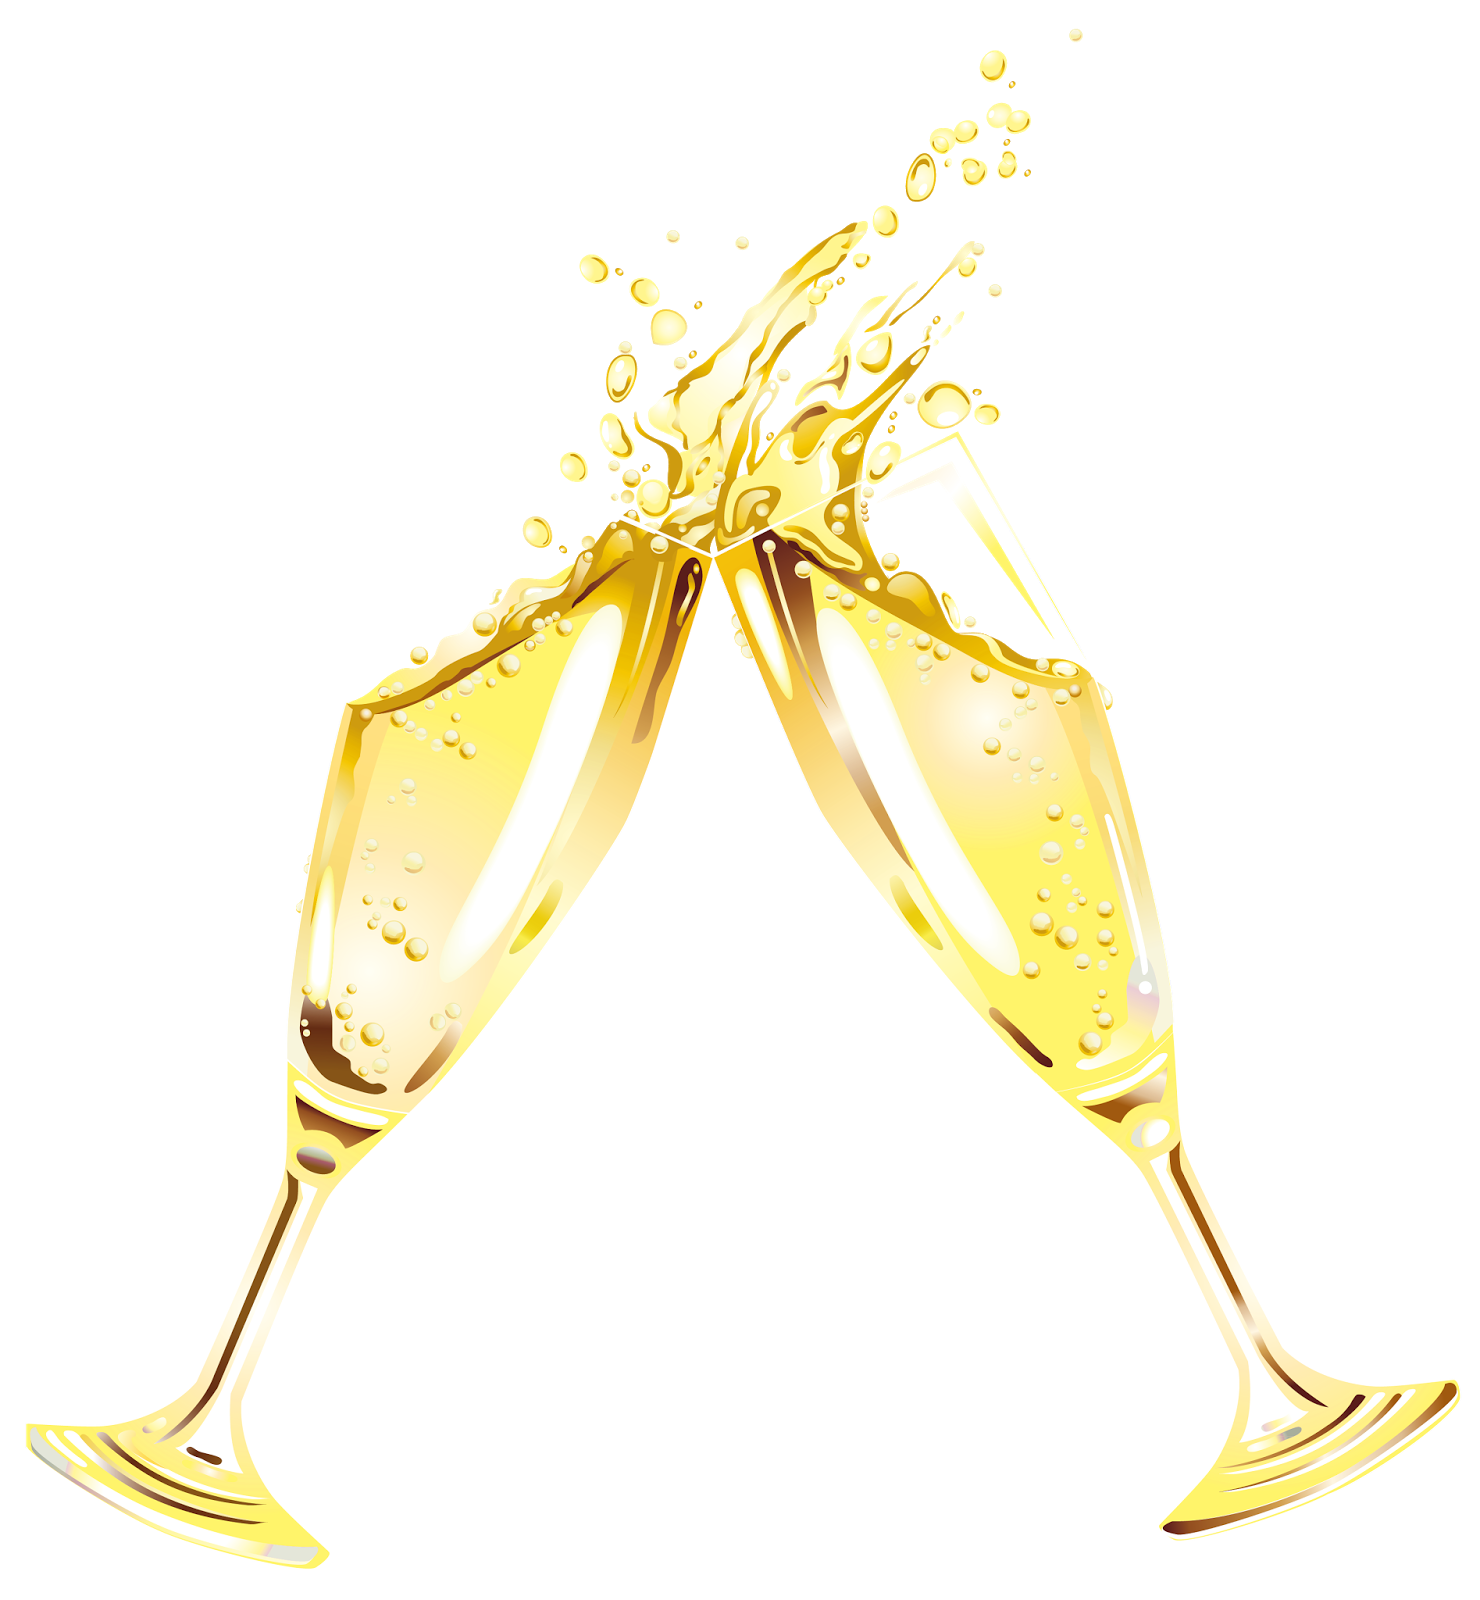 New year champagne glass clipart transparent.